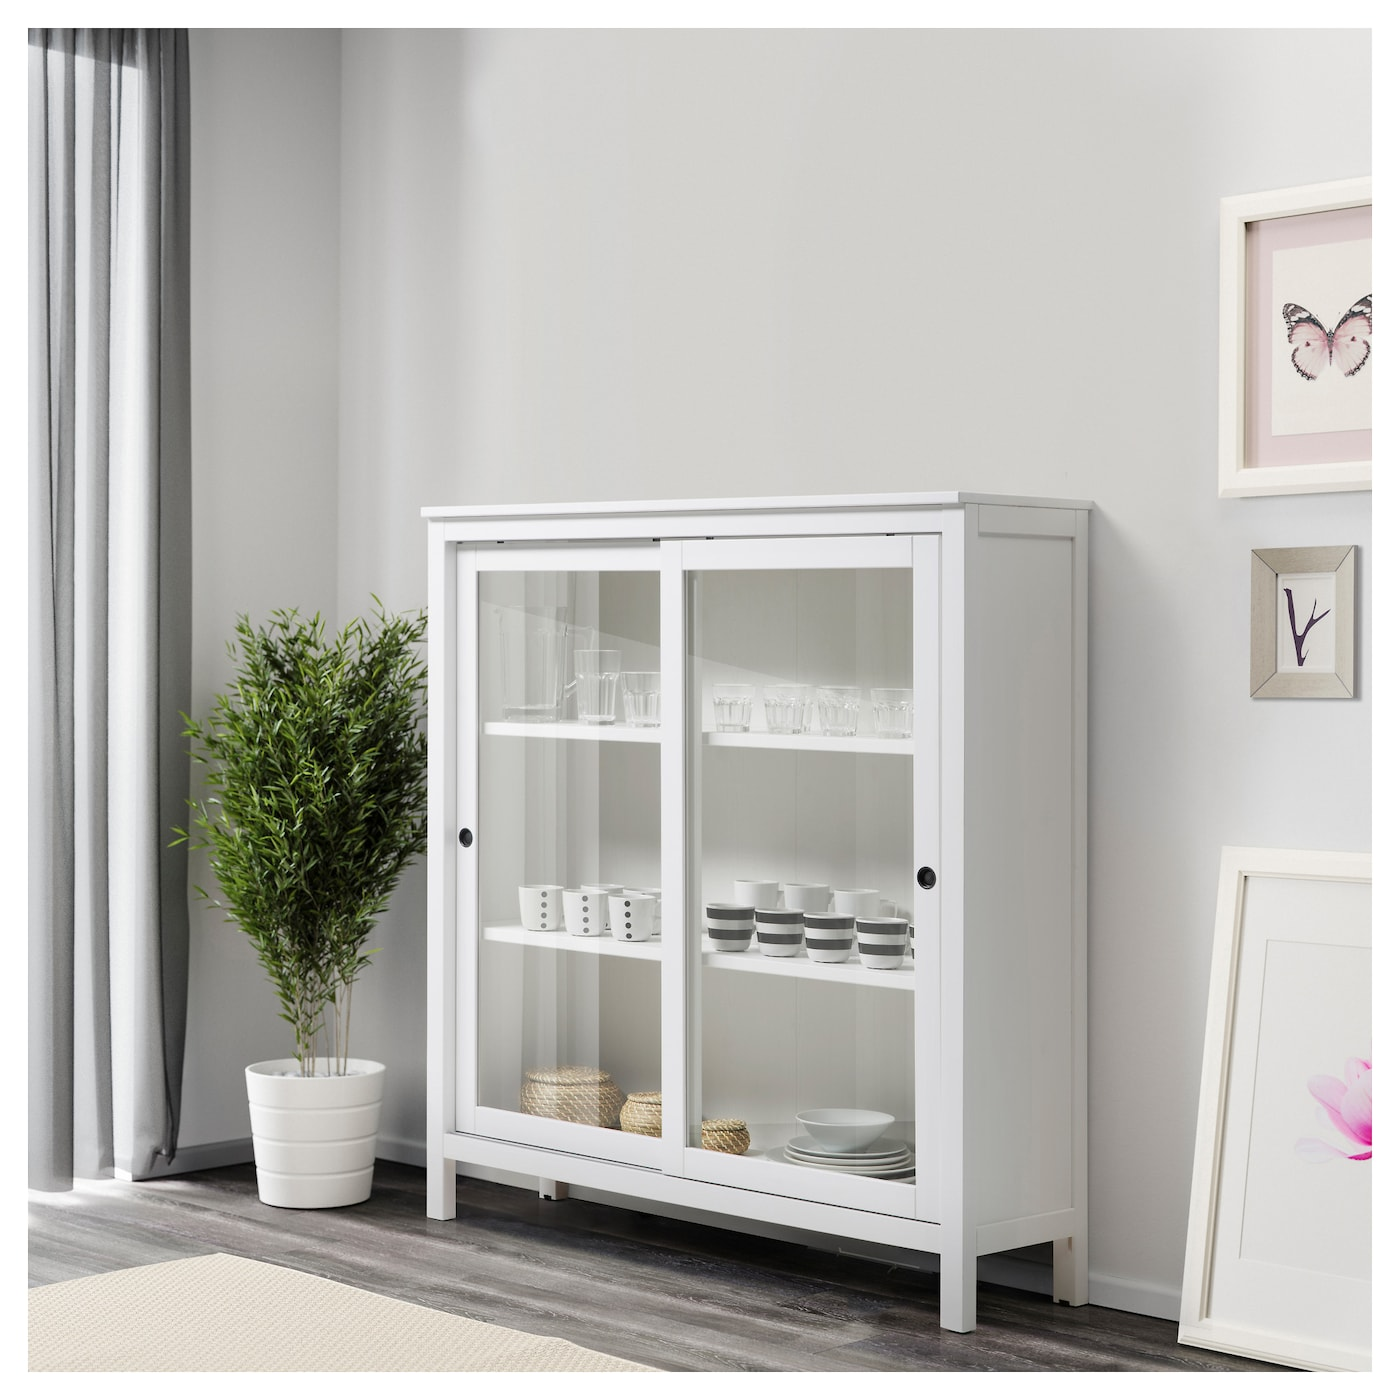 hemnes glass door cabinet white stain 120 x 130 cm ikea. Black Bedroom Furniture Sets. Home Design Ideas